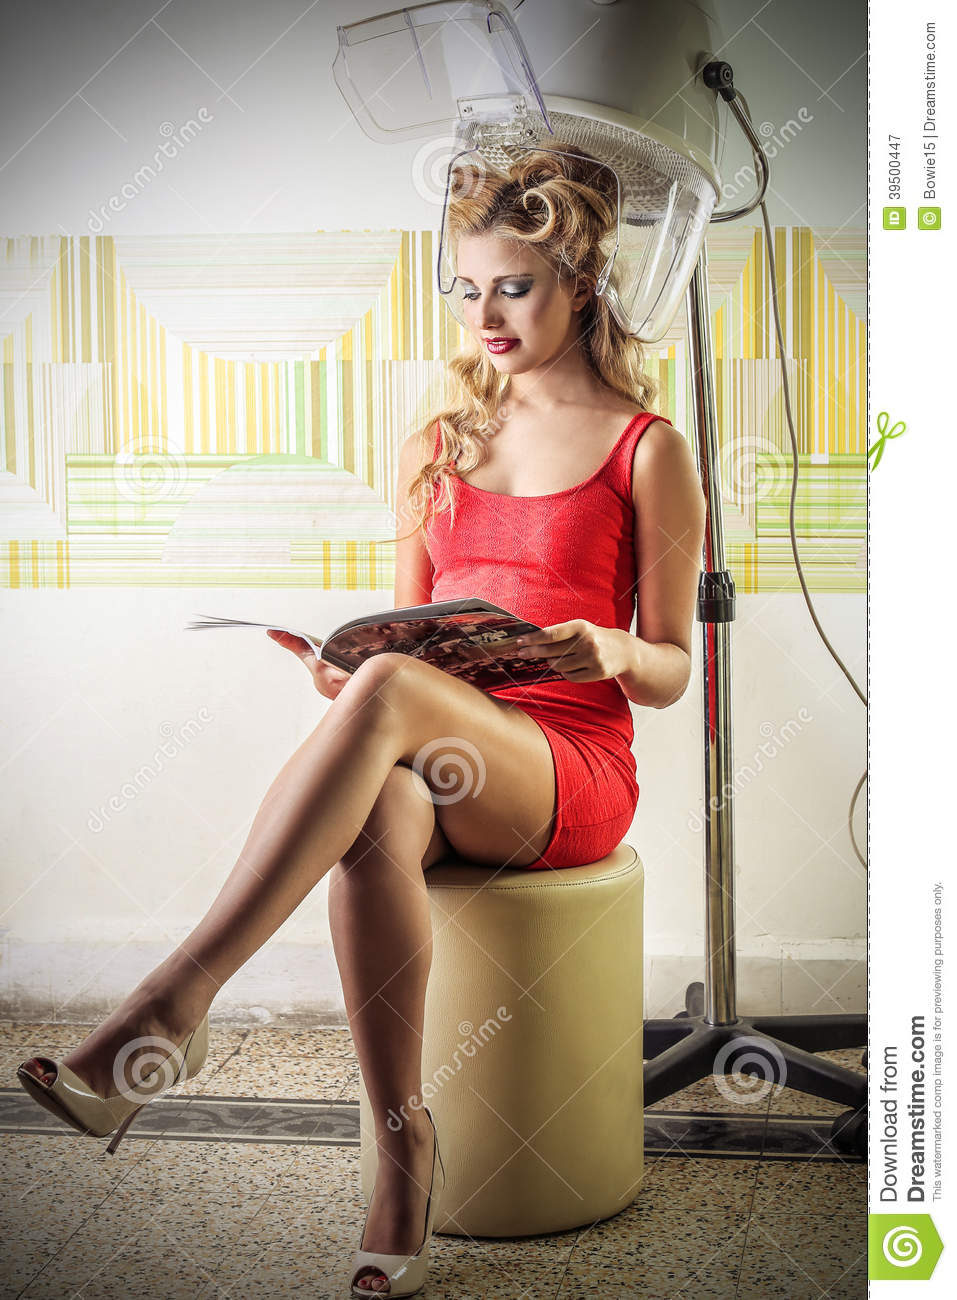 Young woman reading a magazine at the hairdresser